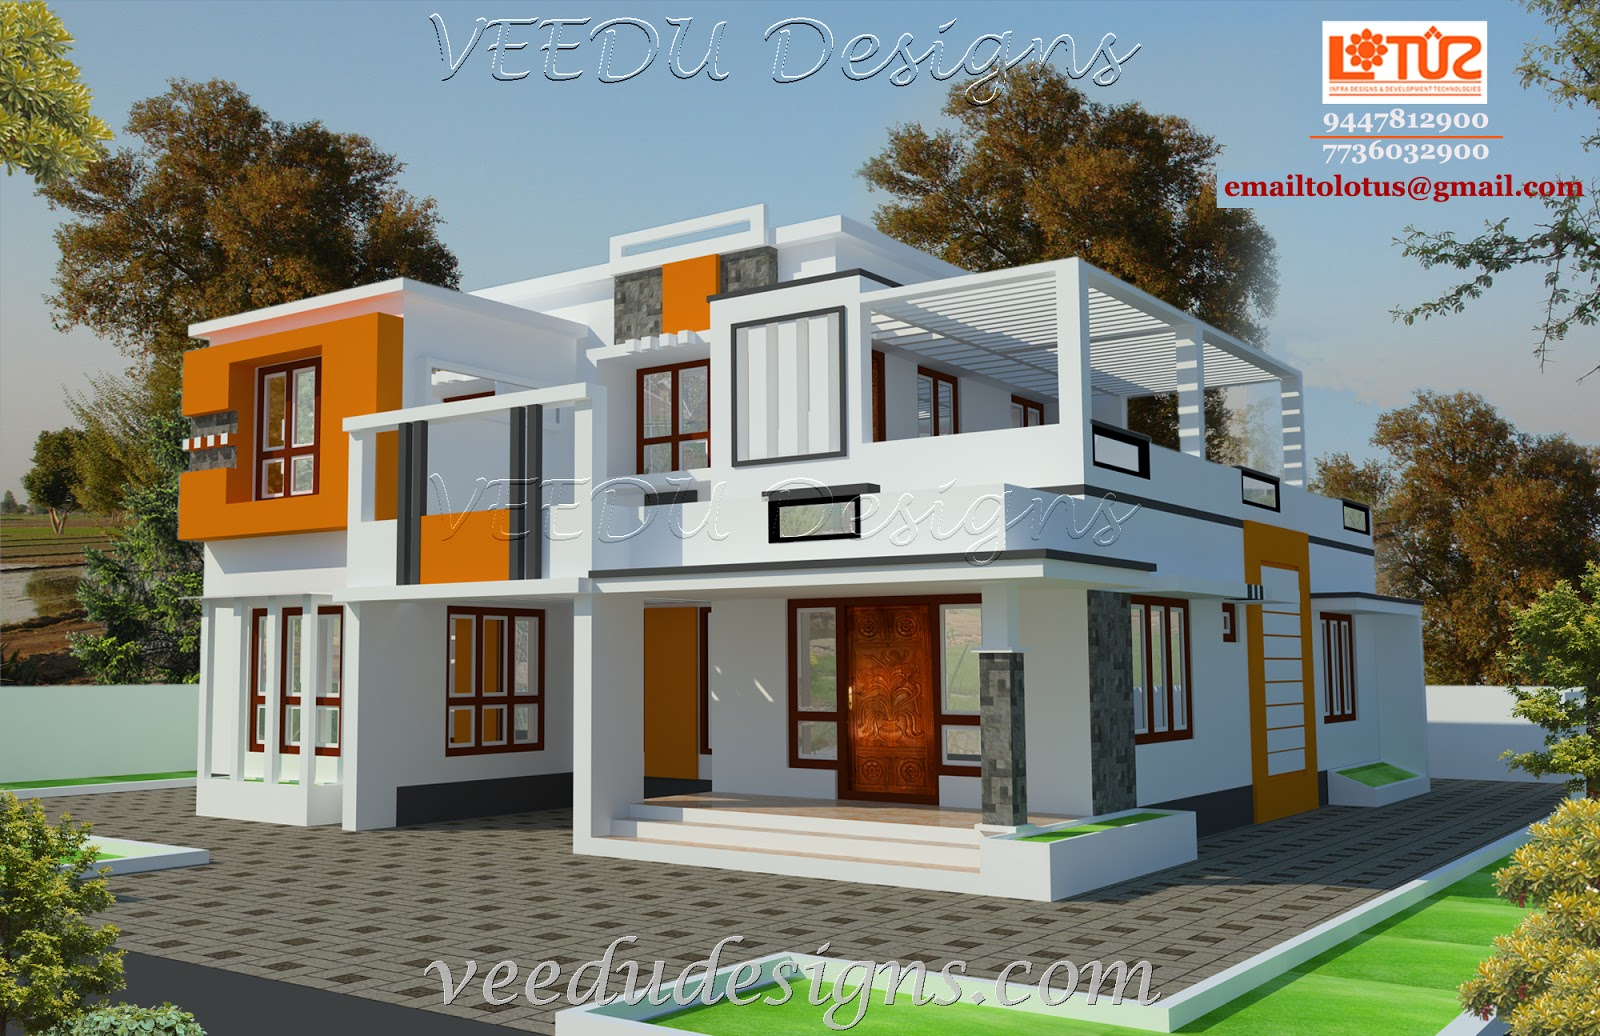 veedu designs kerala home designs